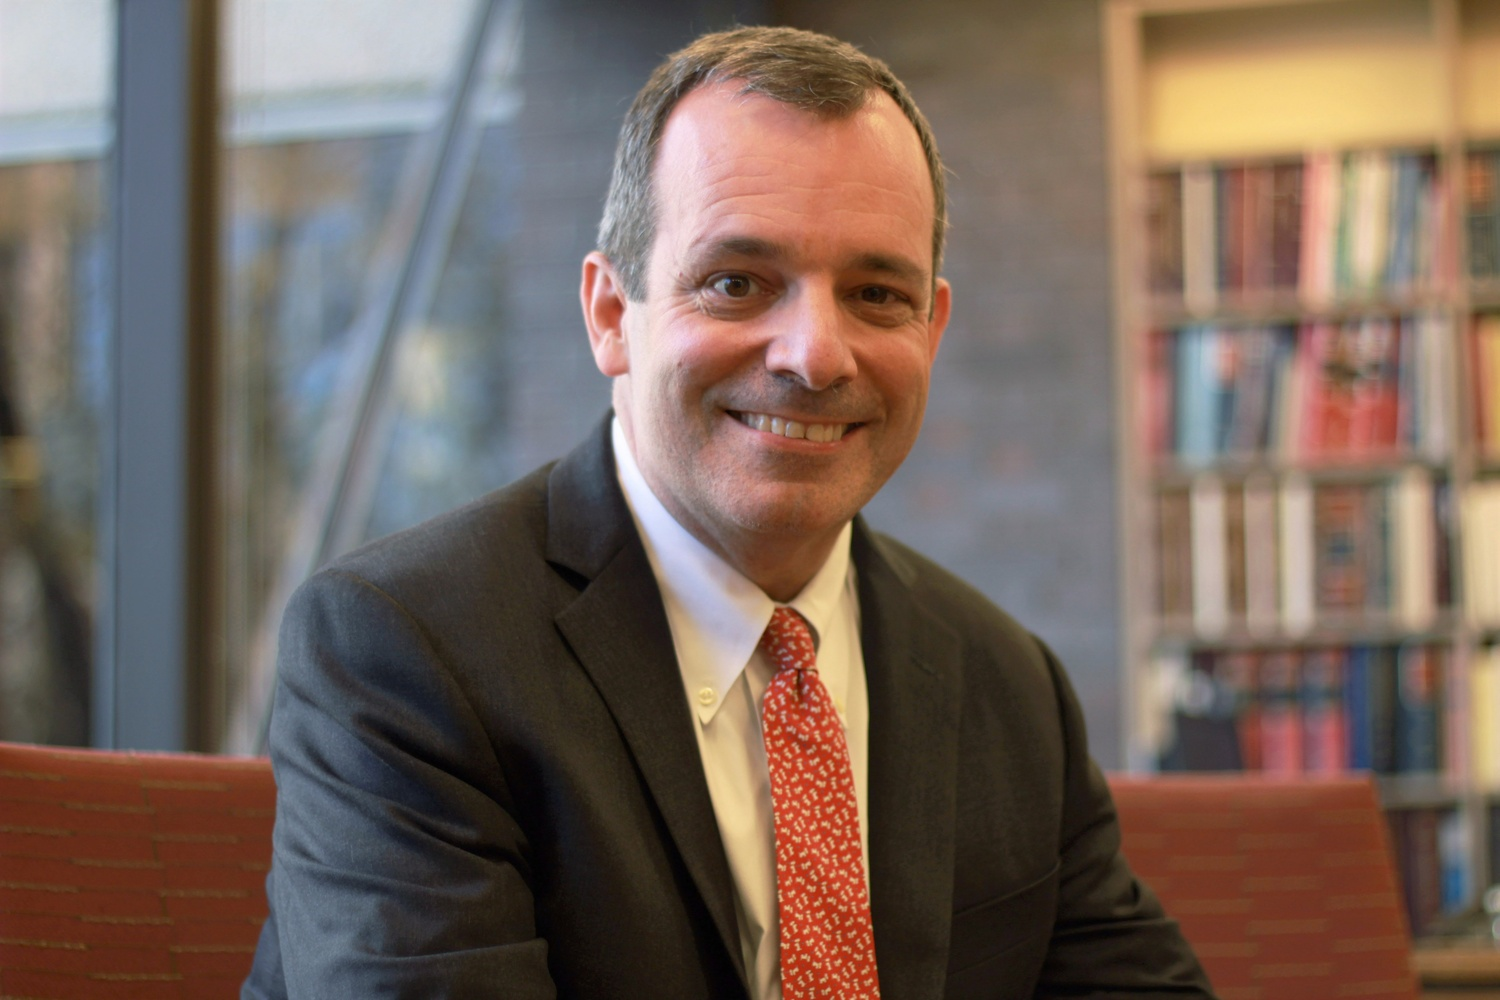 Harvard Law School Dean John F. Manning '82 announced in an April 14 email to the Law School that he will reduce his salary for the coming year due to the financial crisis caused by the coronavirus pandemic.